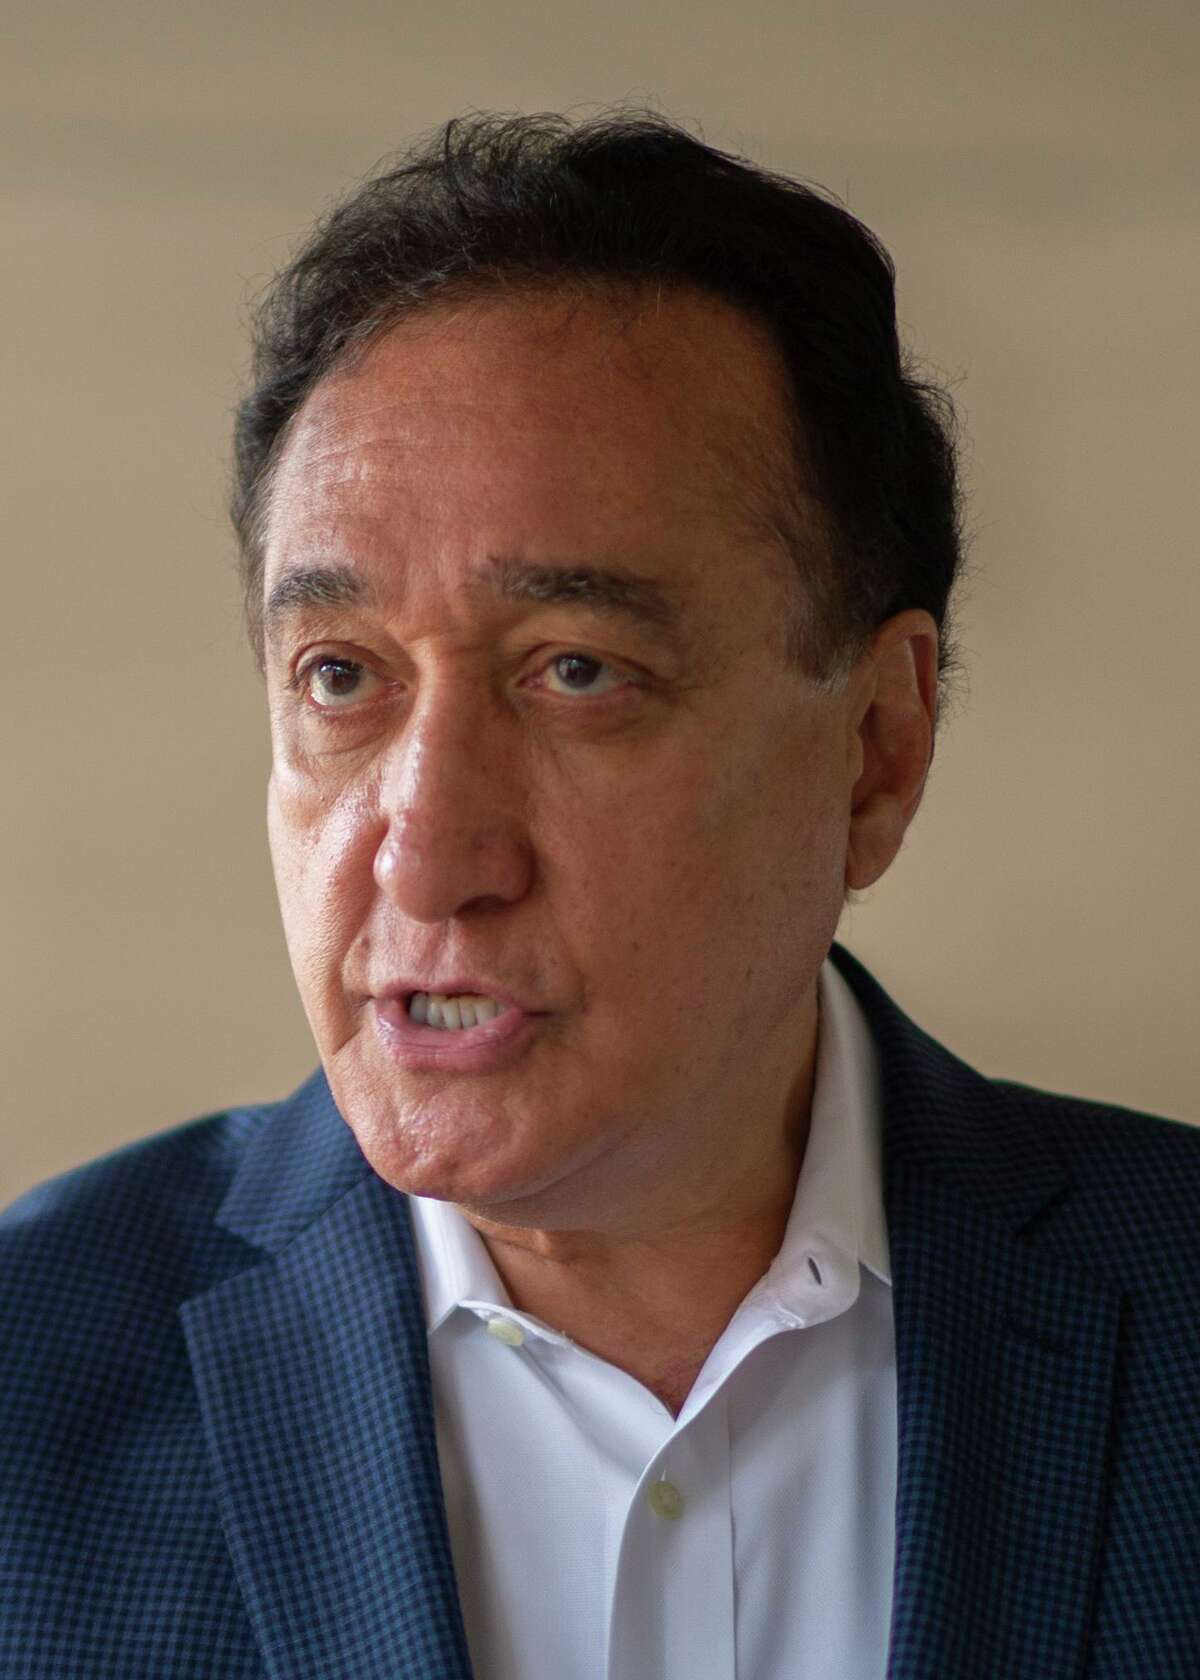 Henry Cisneros, former San Antonio mayor and secretary of U.S. Housing and Urban Development.